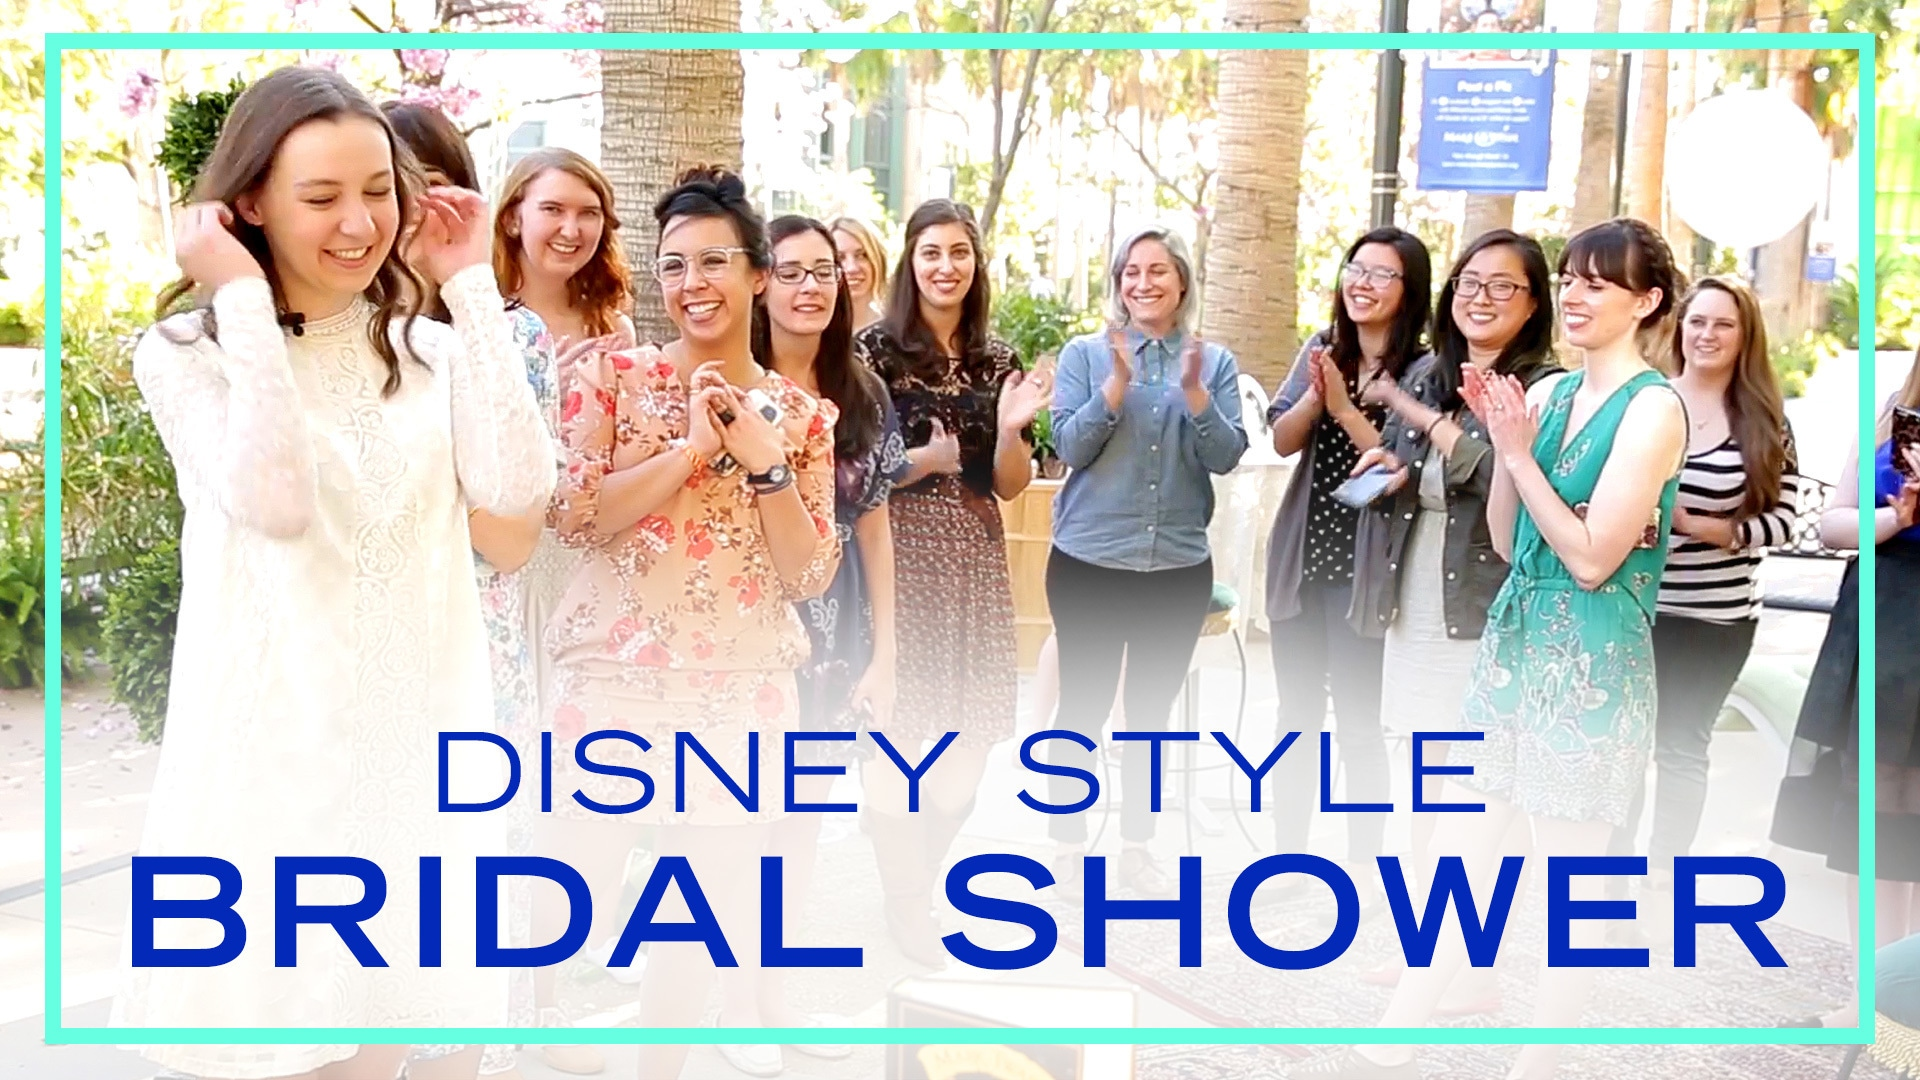 Disney Style Bridal Shower | Be Our Guest